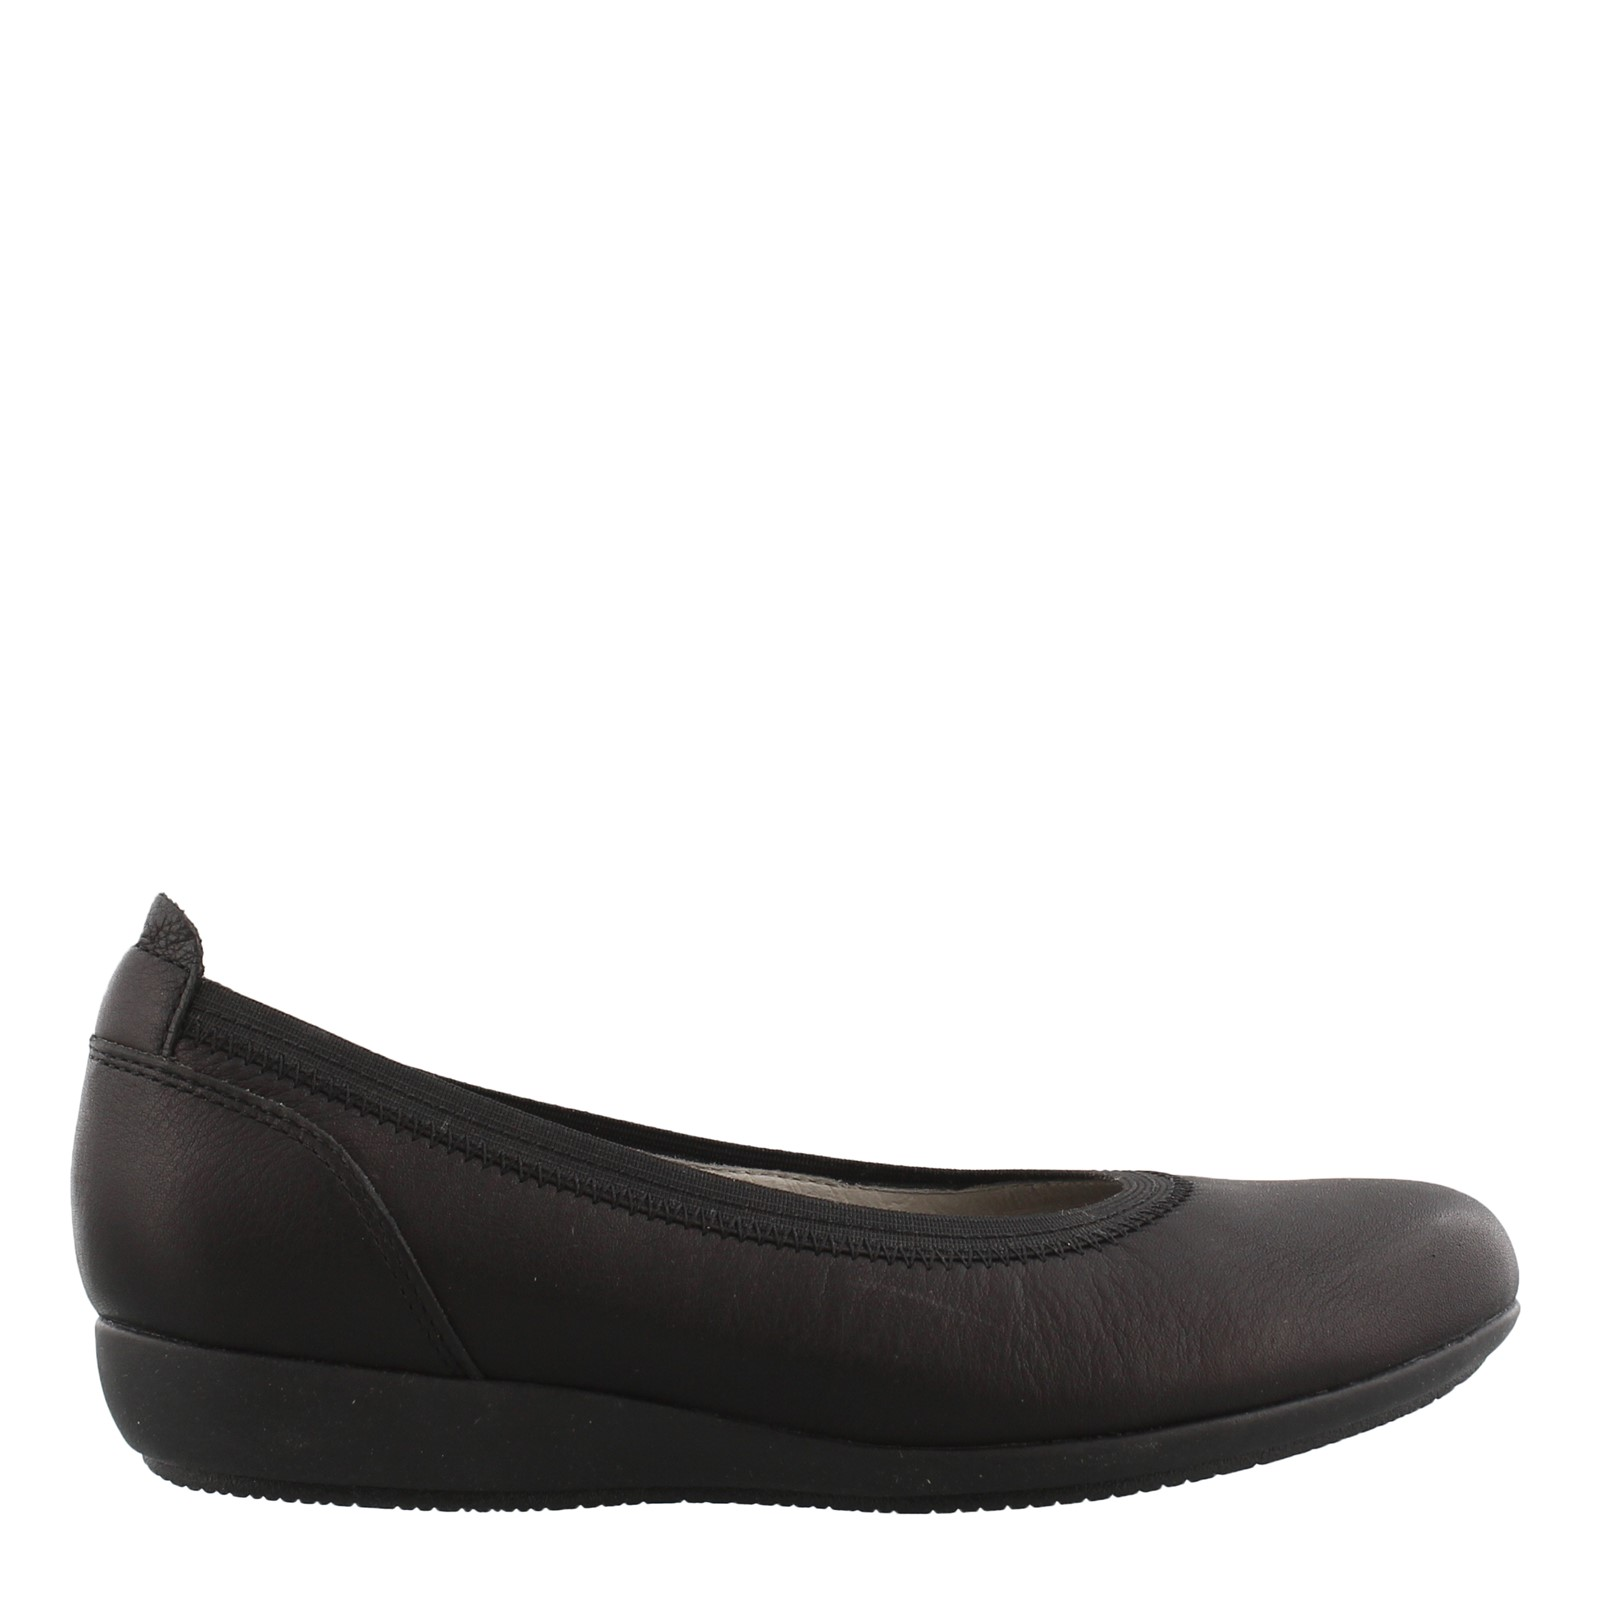 Women's Dansko, Kristen Slip on Flats